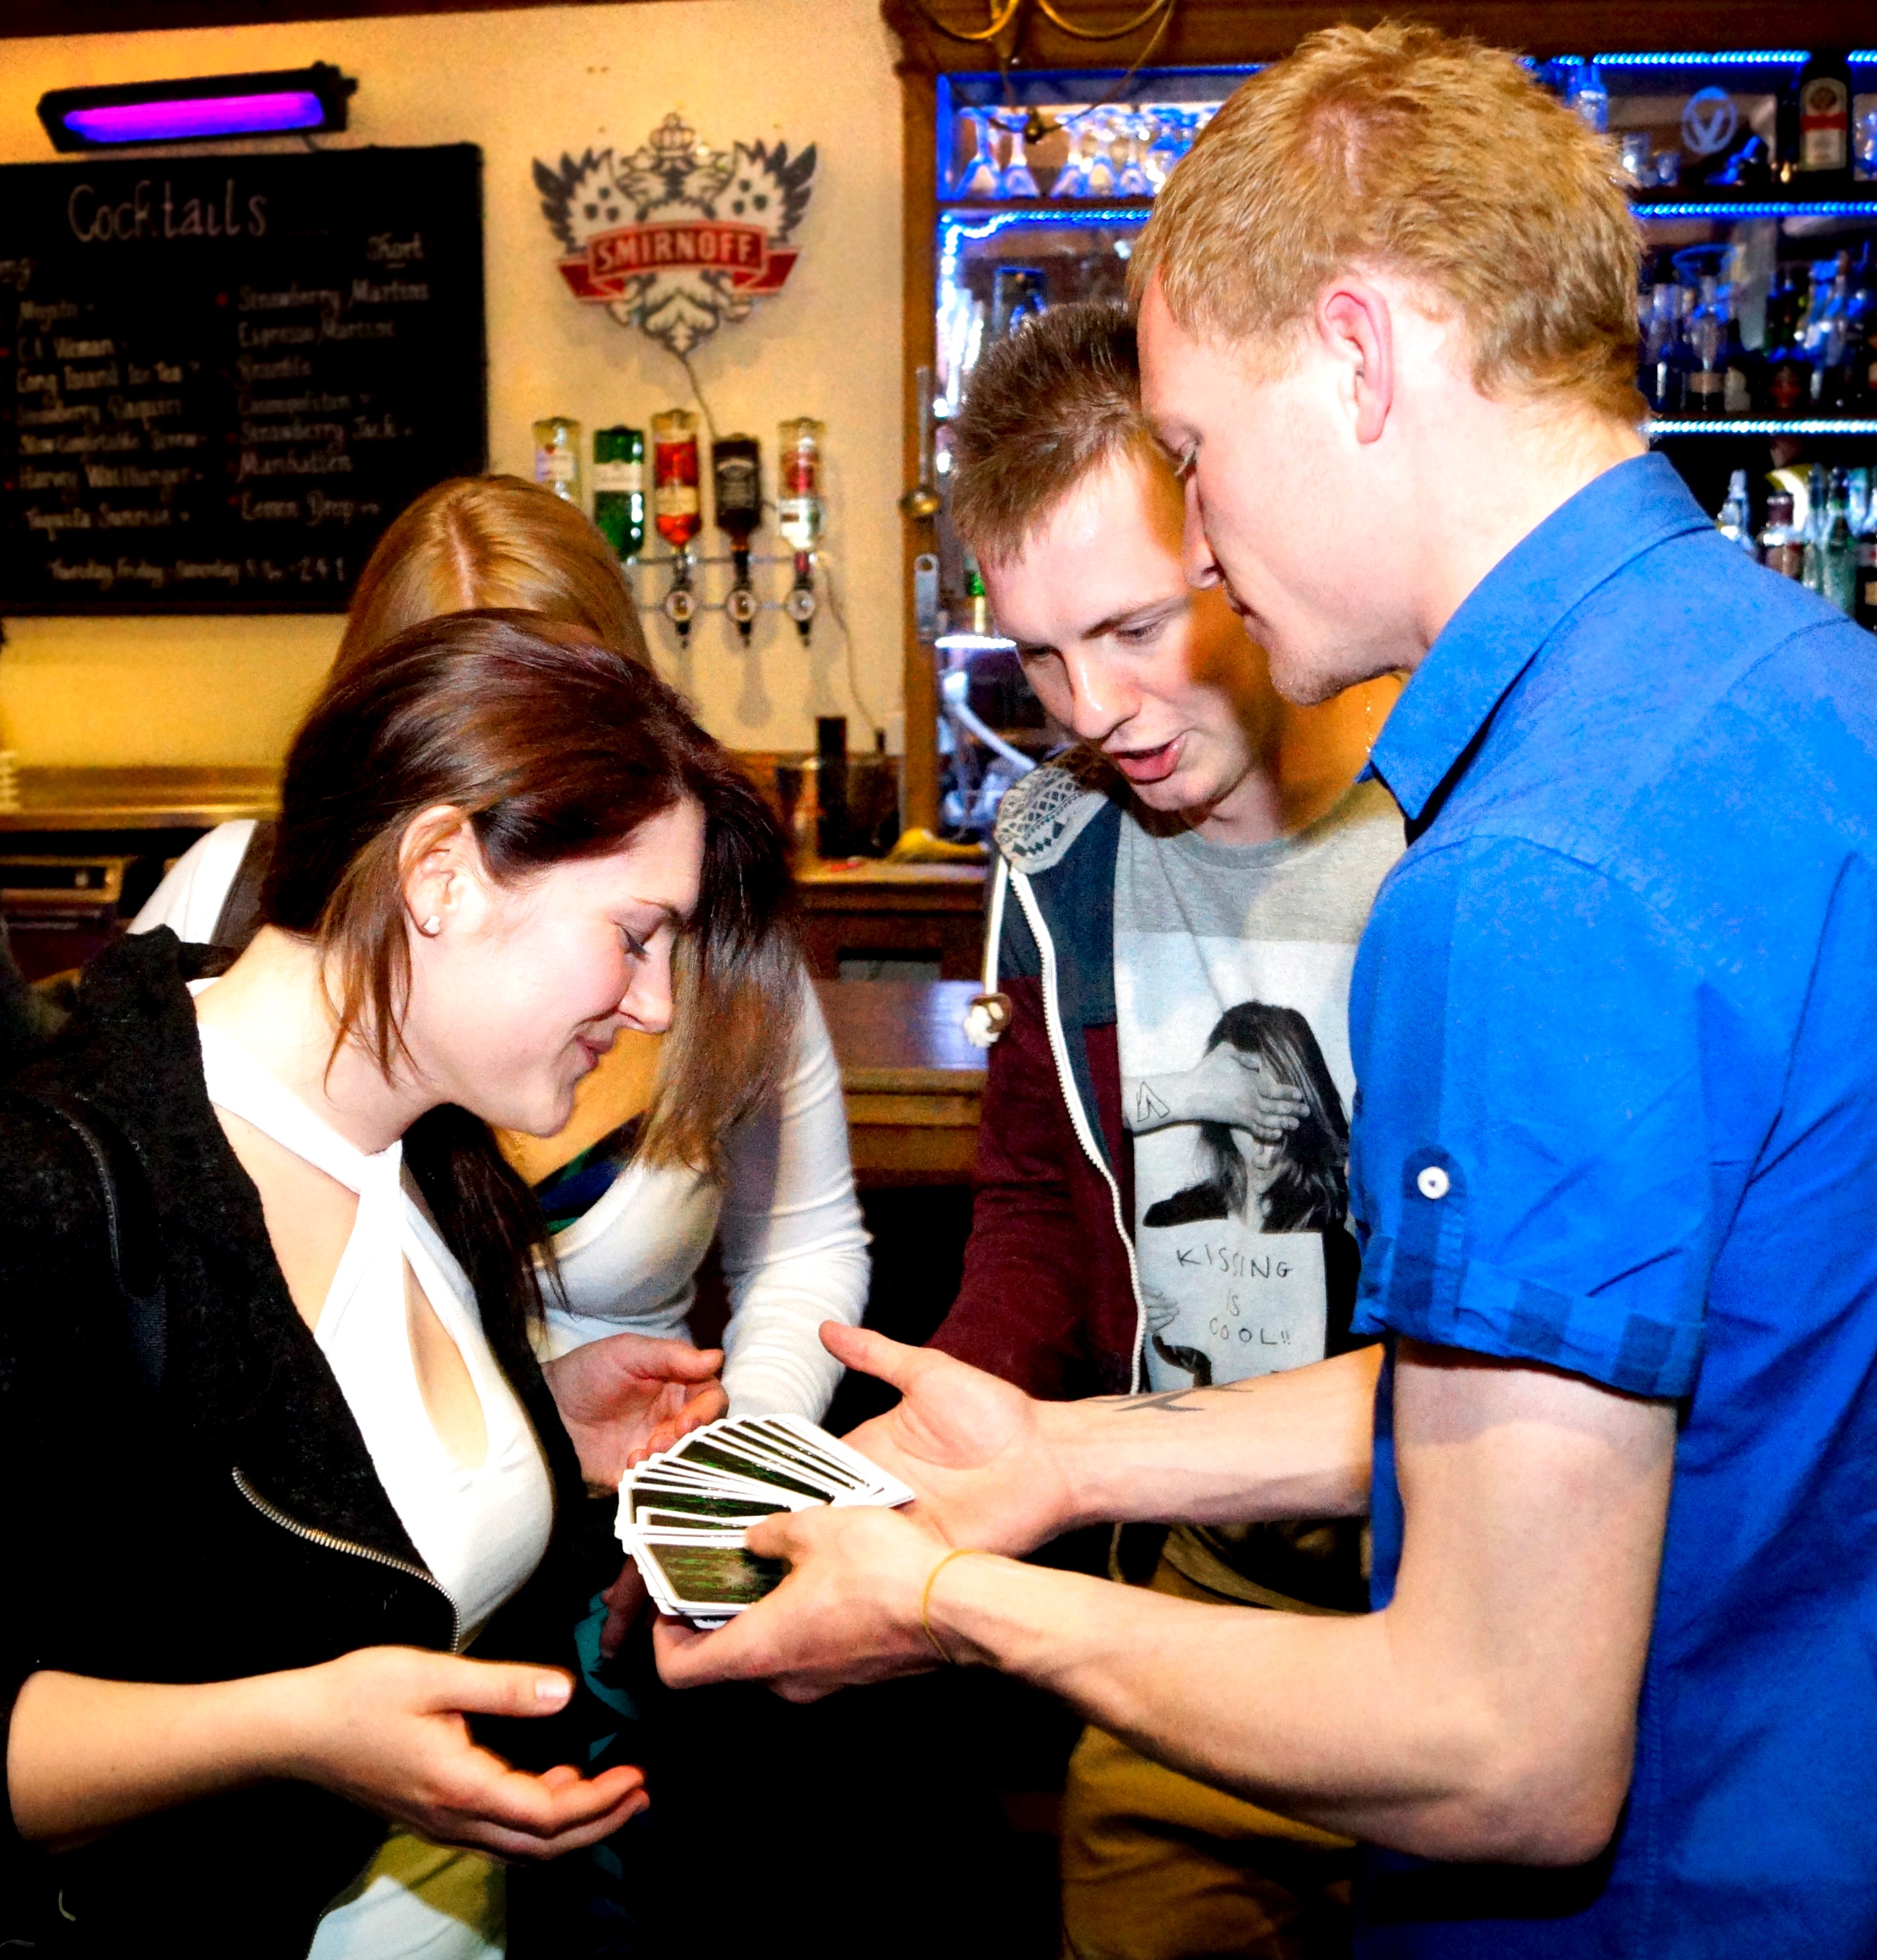 Liam Walsh Magic Nightclub Performance Magician Sound Event Party Crowds Tricks